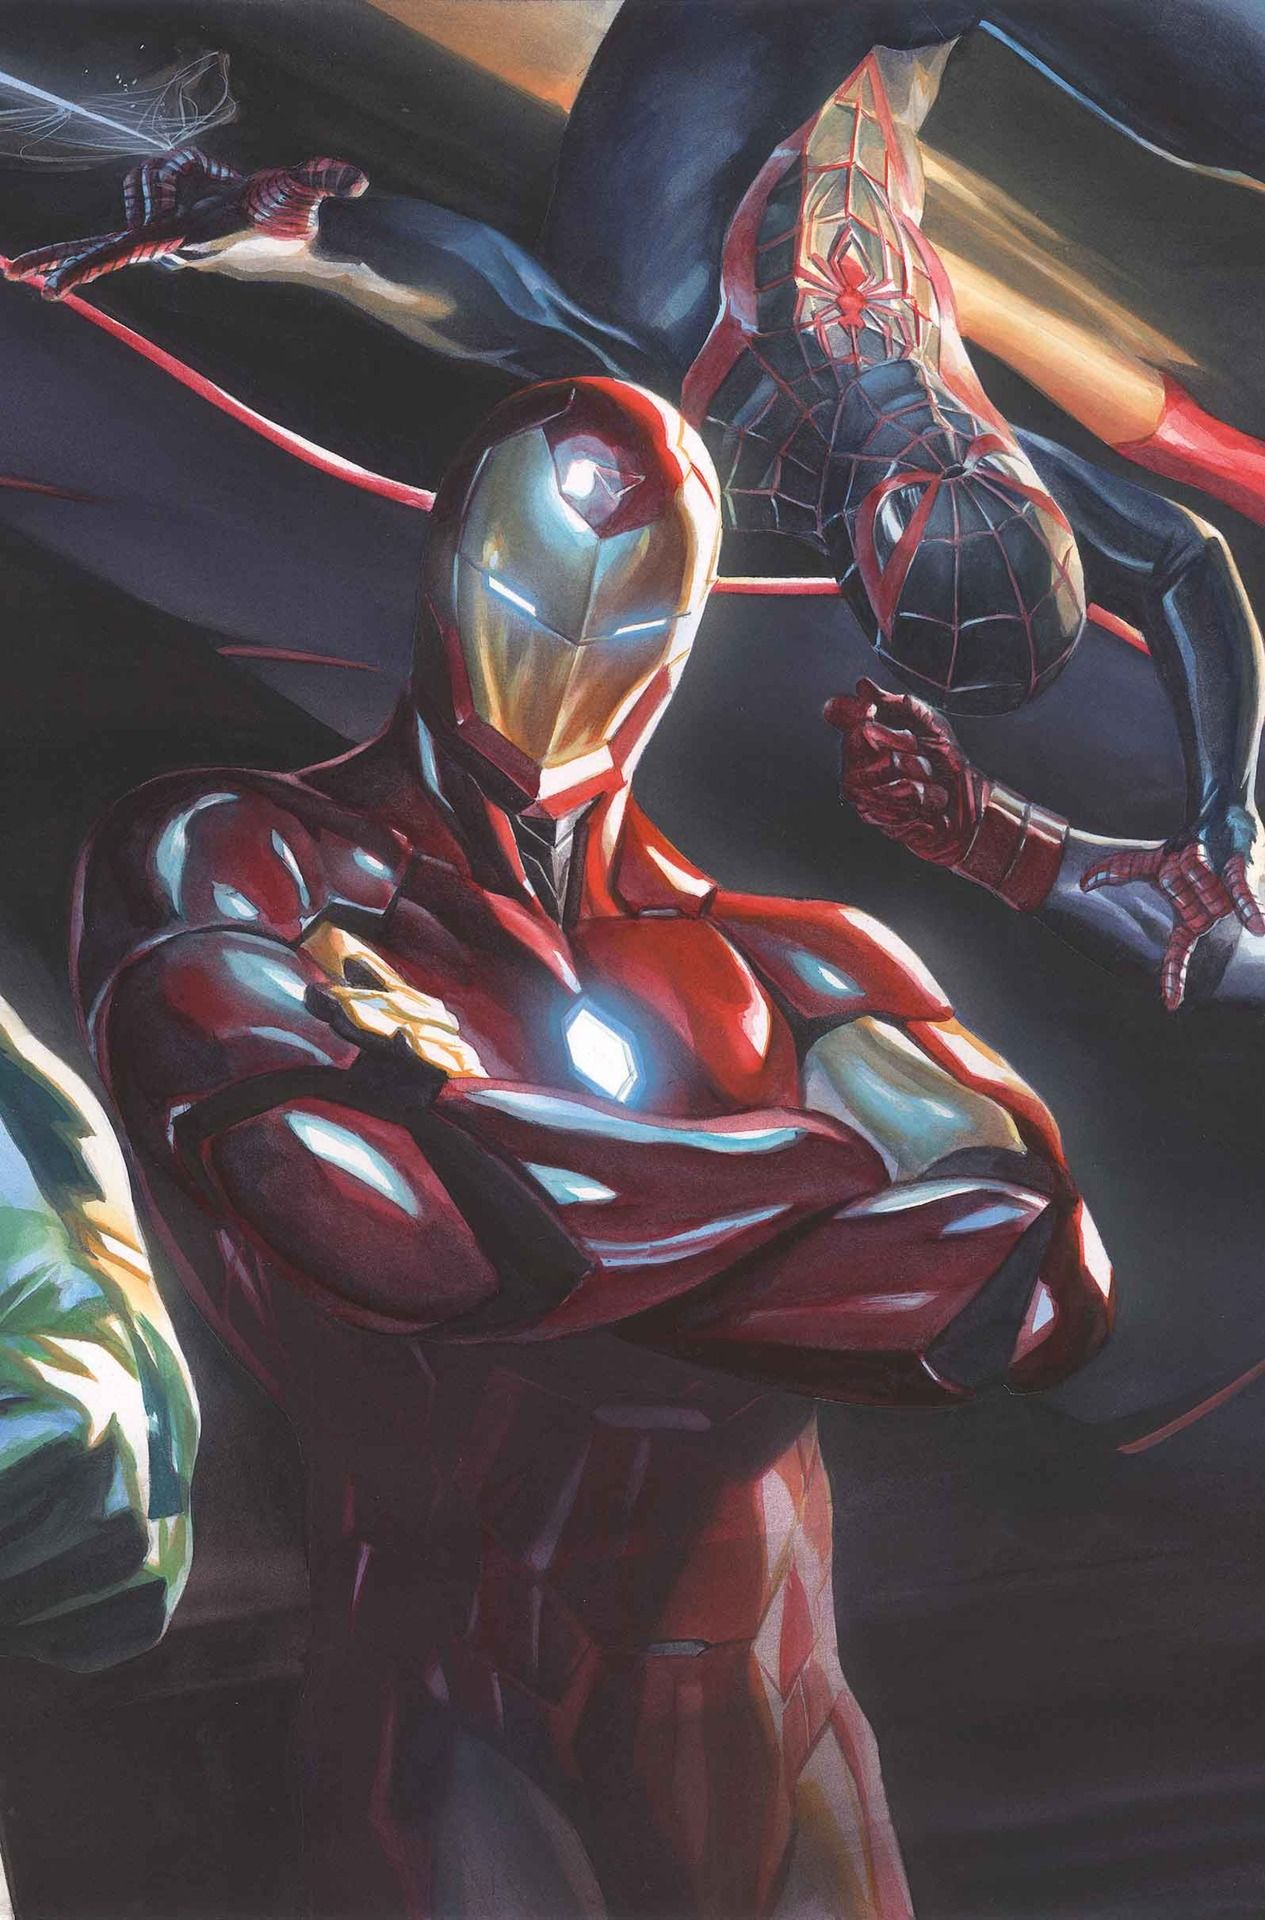 Marvel Comics August 2016 Covers and Solicitations | Marvel, Marvel comics  art, Marvel superheroes